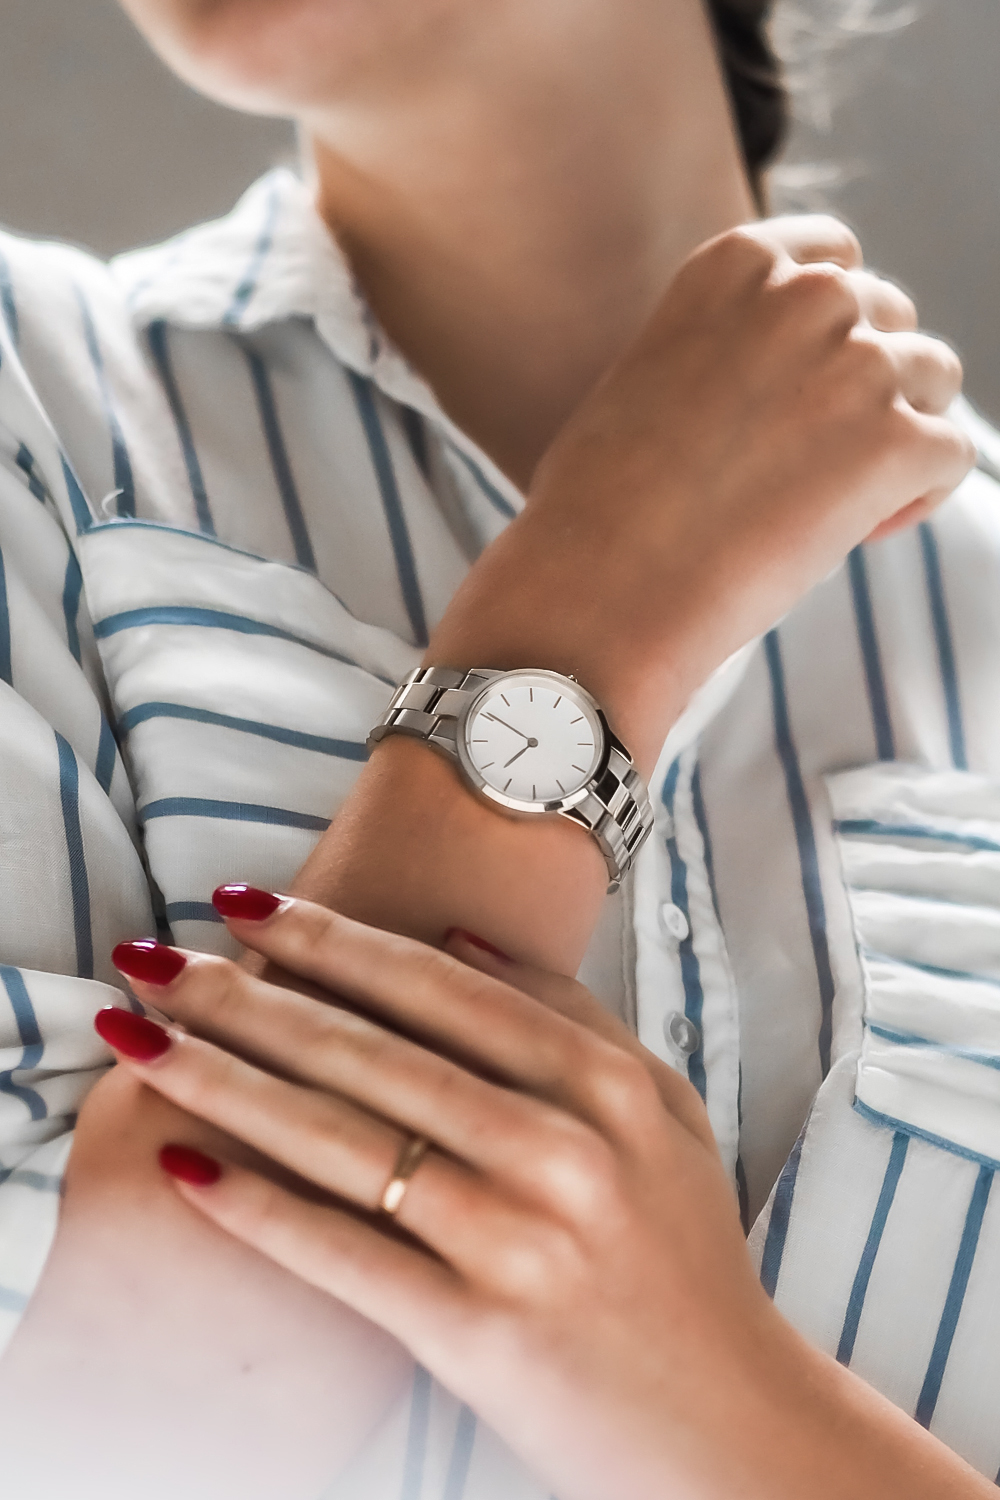 a close-up picture of a woman's hand with a silver watch on it